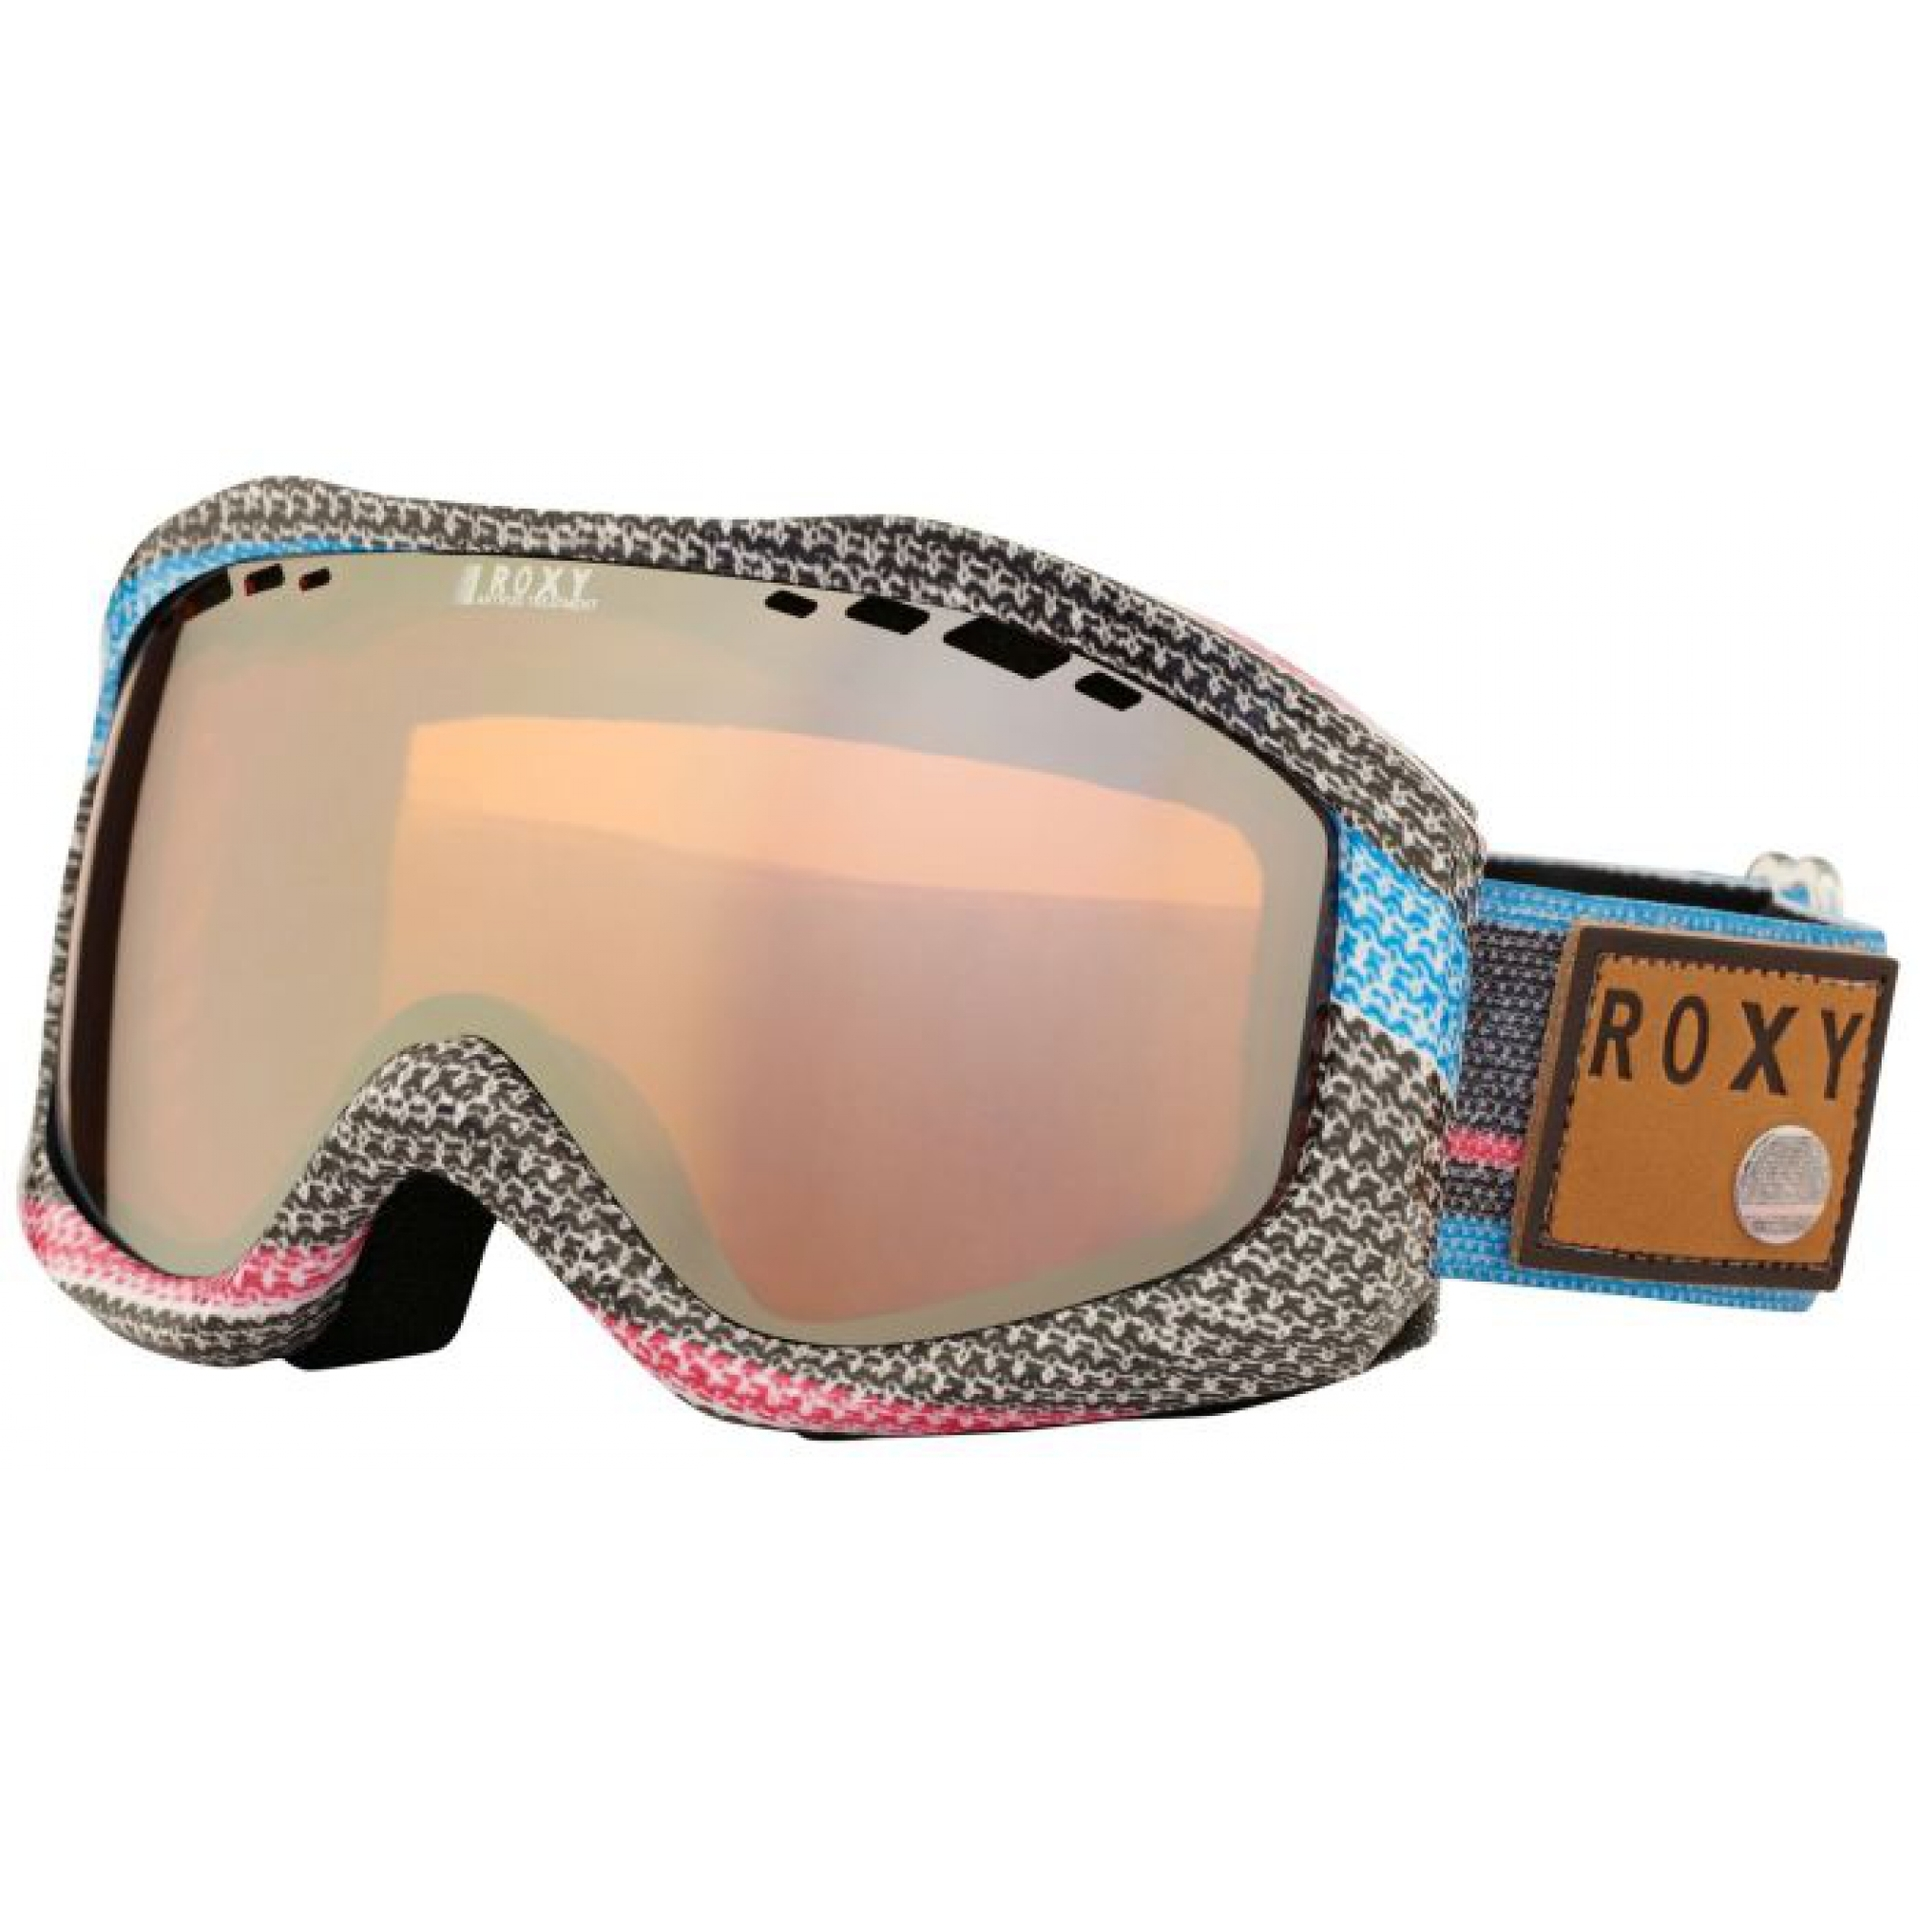 GOGLE ROXY SUNSET ART MIRROR WIELOKOLOROWY